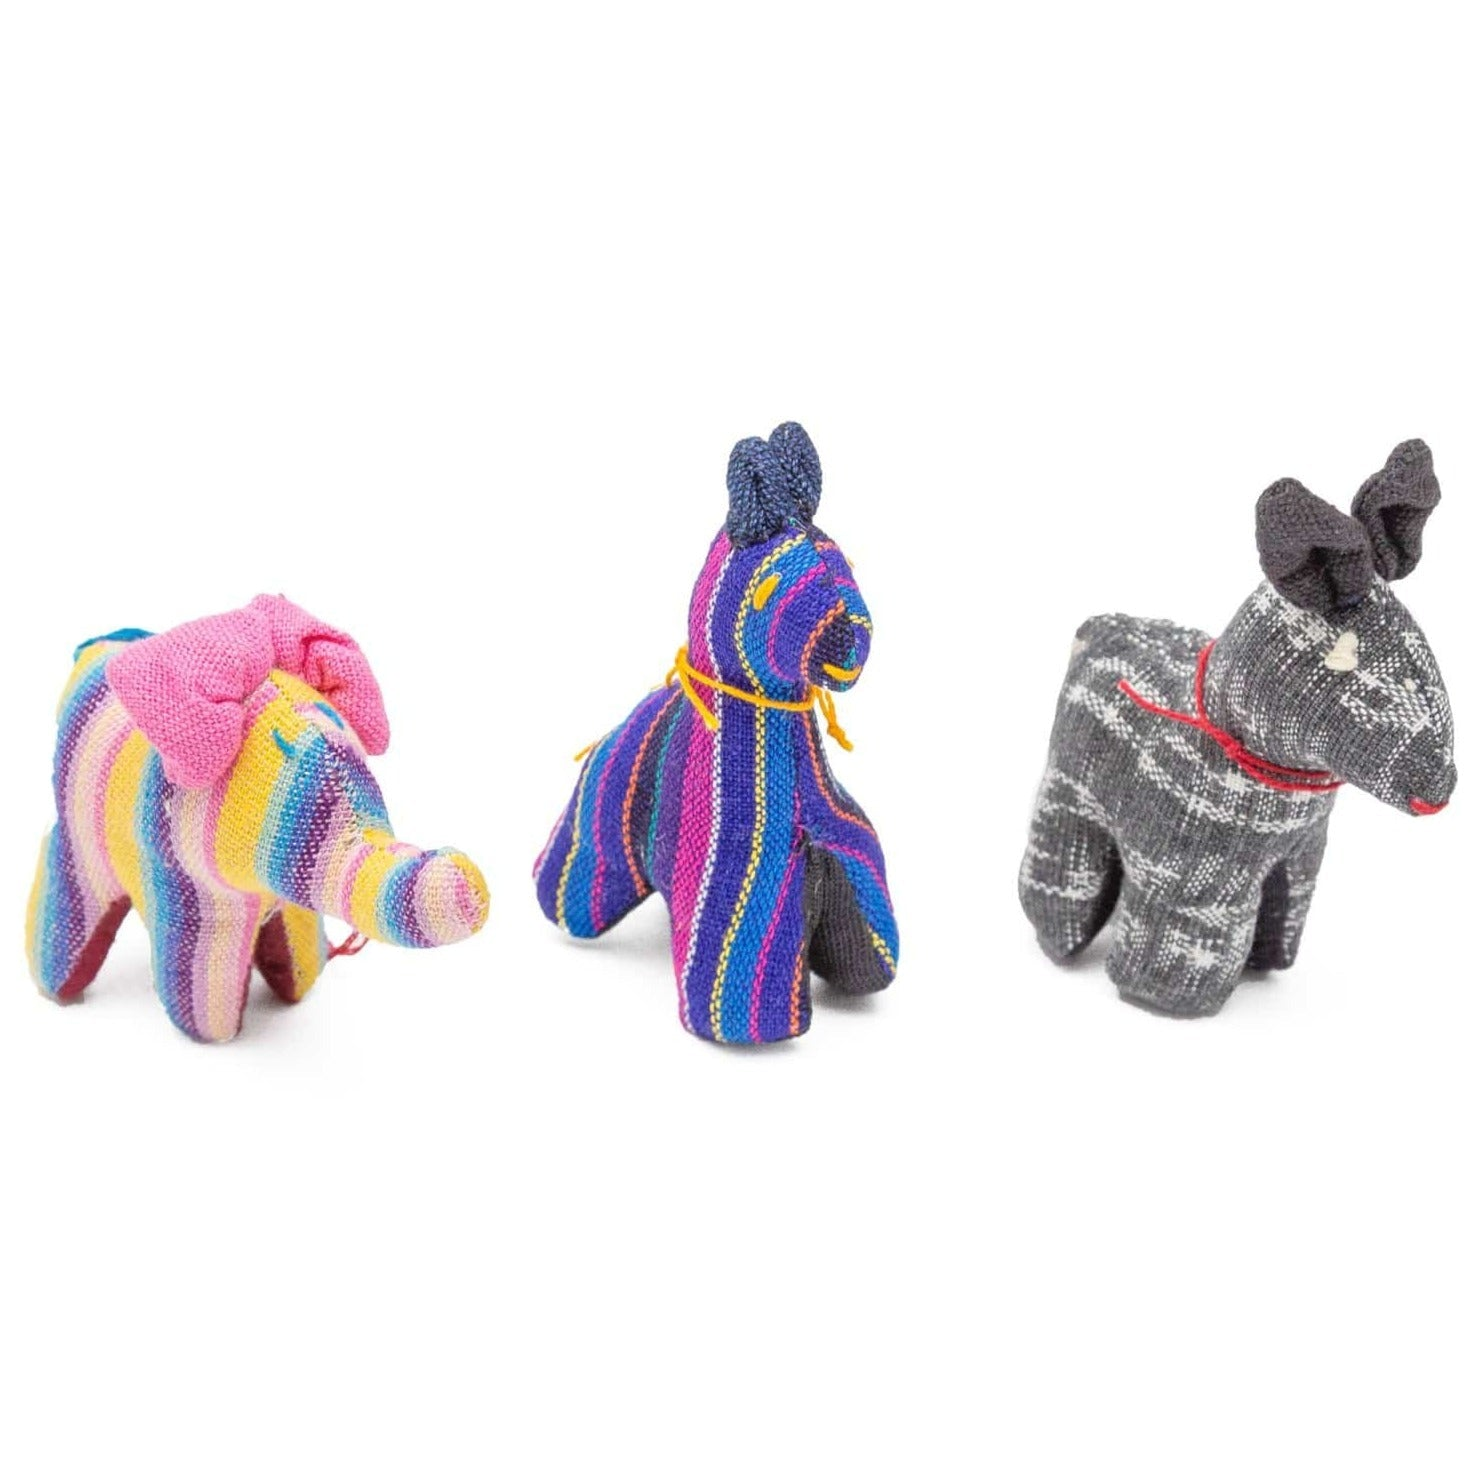 Fair Trade Handmade Cotton Animal Toys ?id=14008048746549